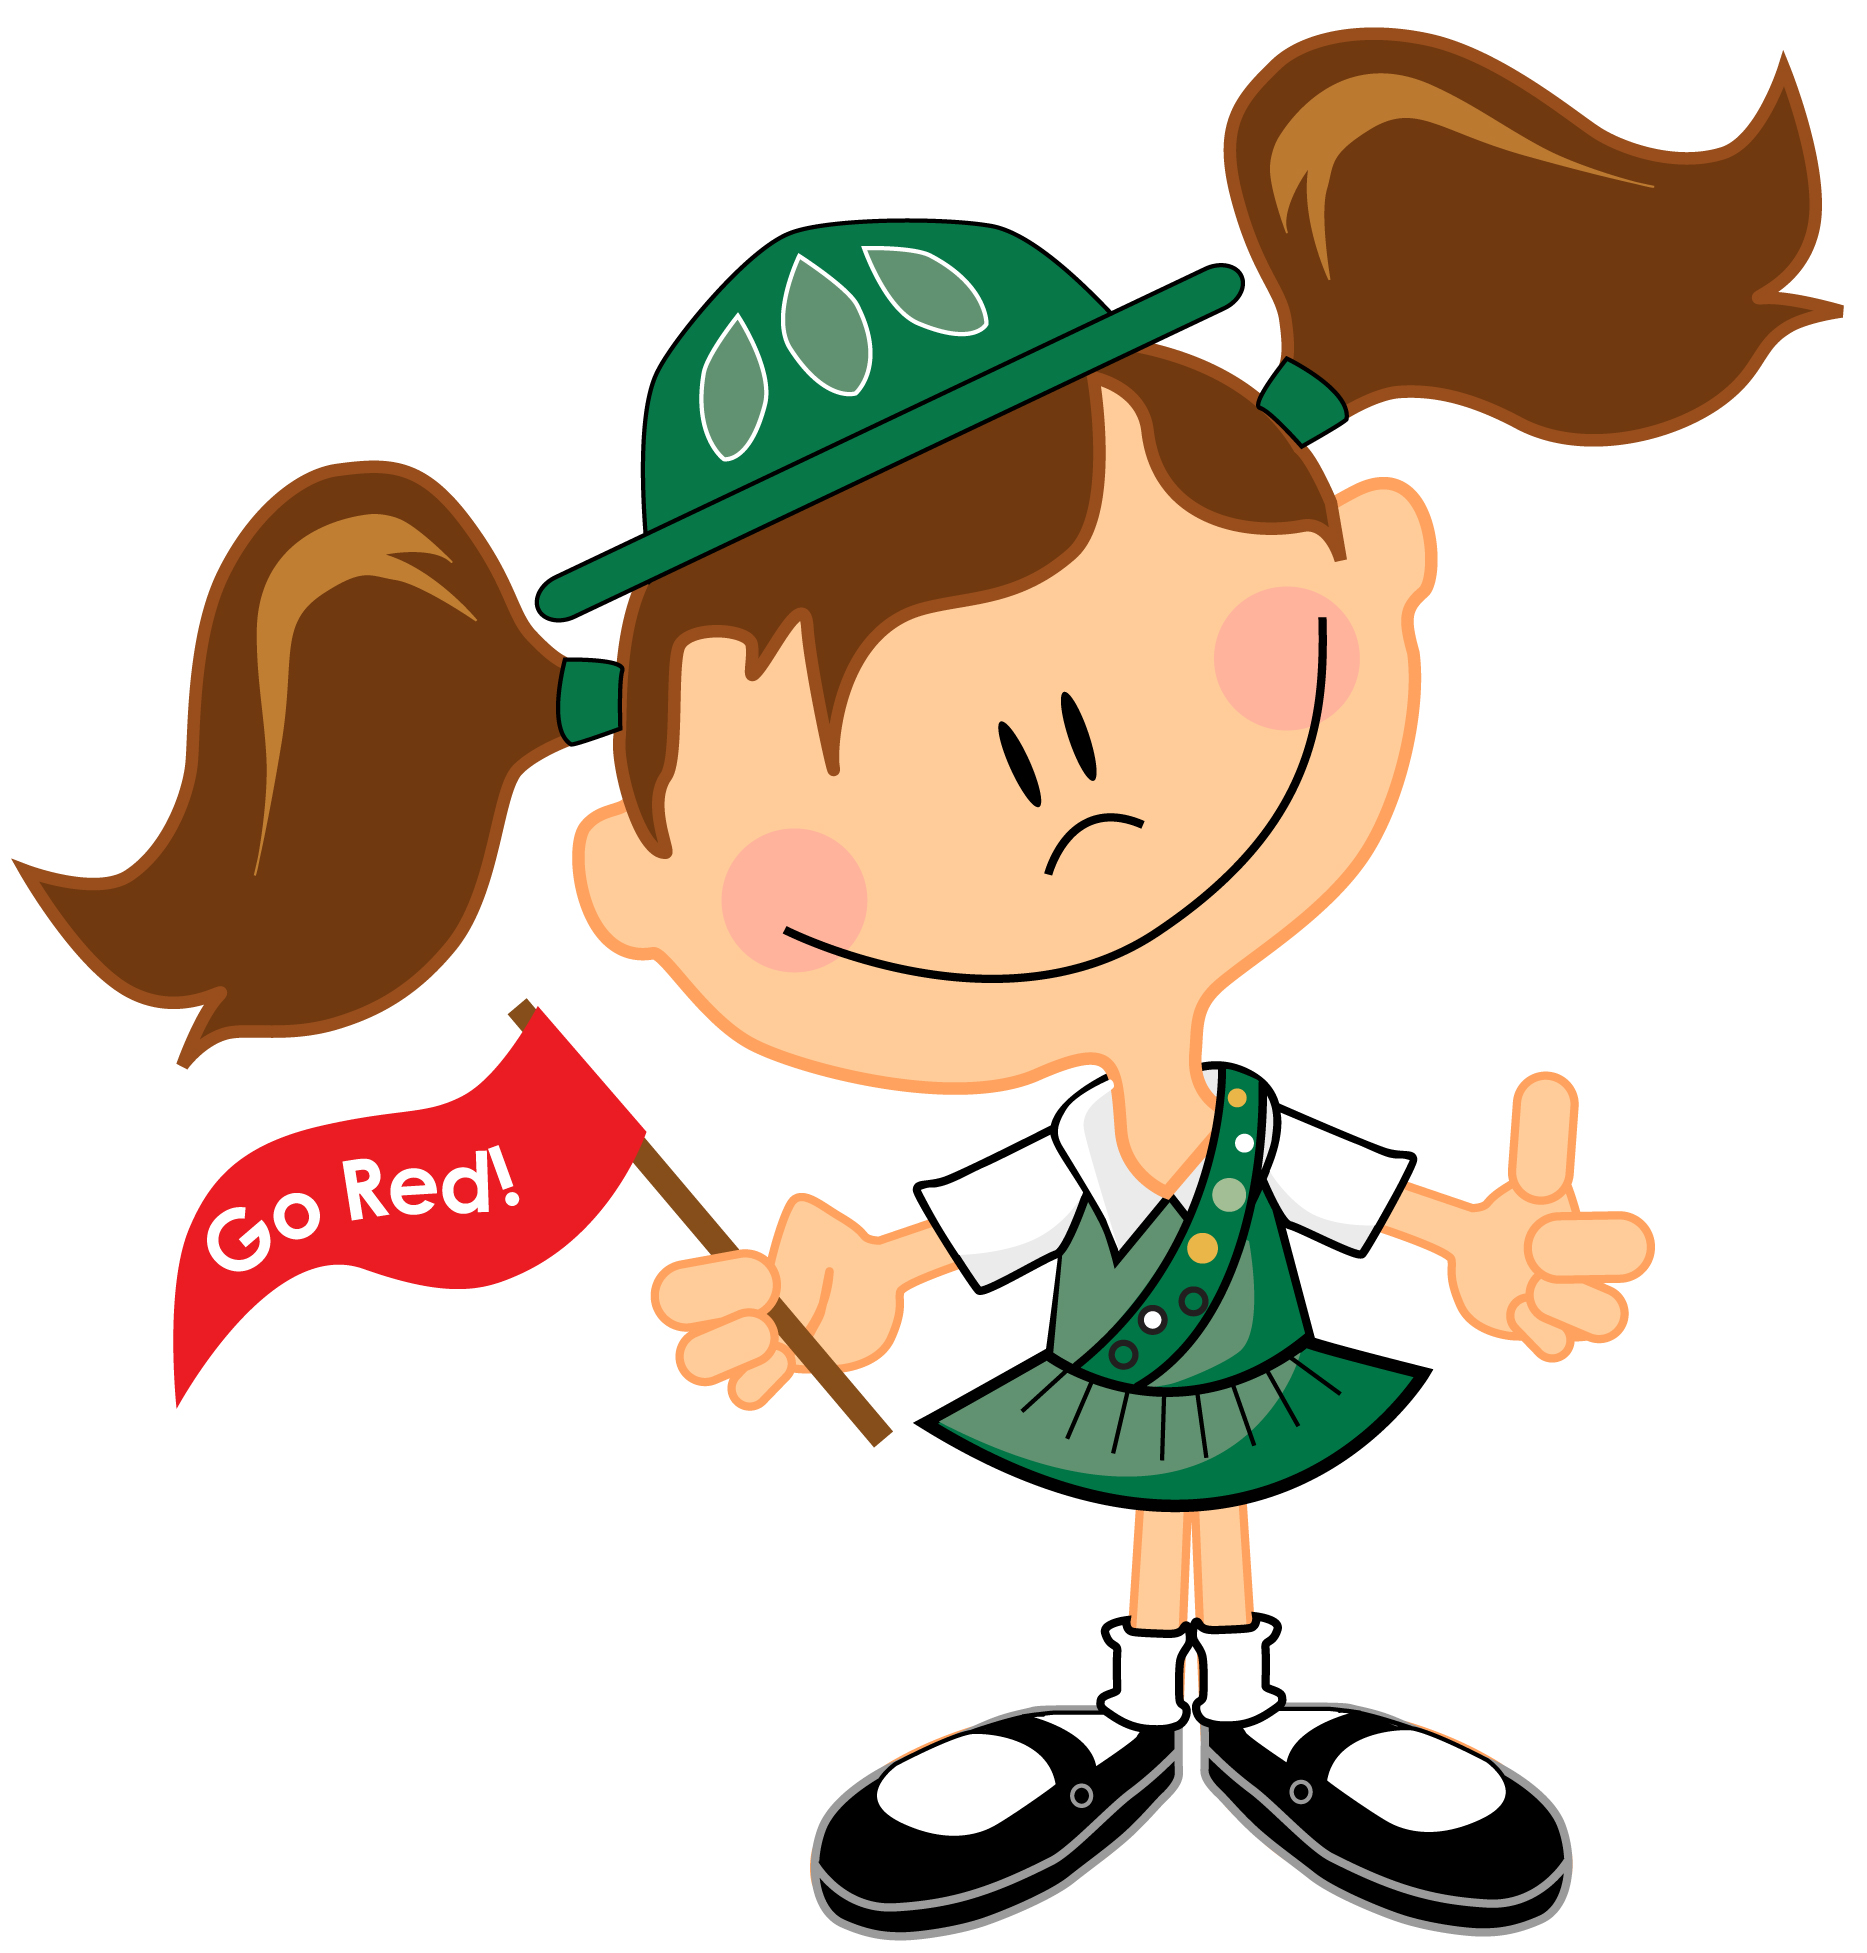 Girl scout helping clipart clipart royalty free Girl Scout Clipart & Look At Clip Art Images - ClipartLook clipart royalty free